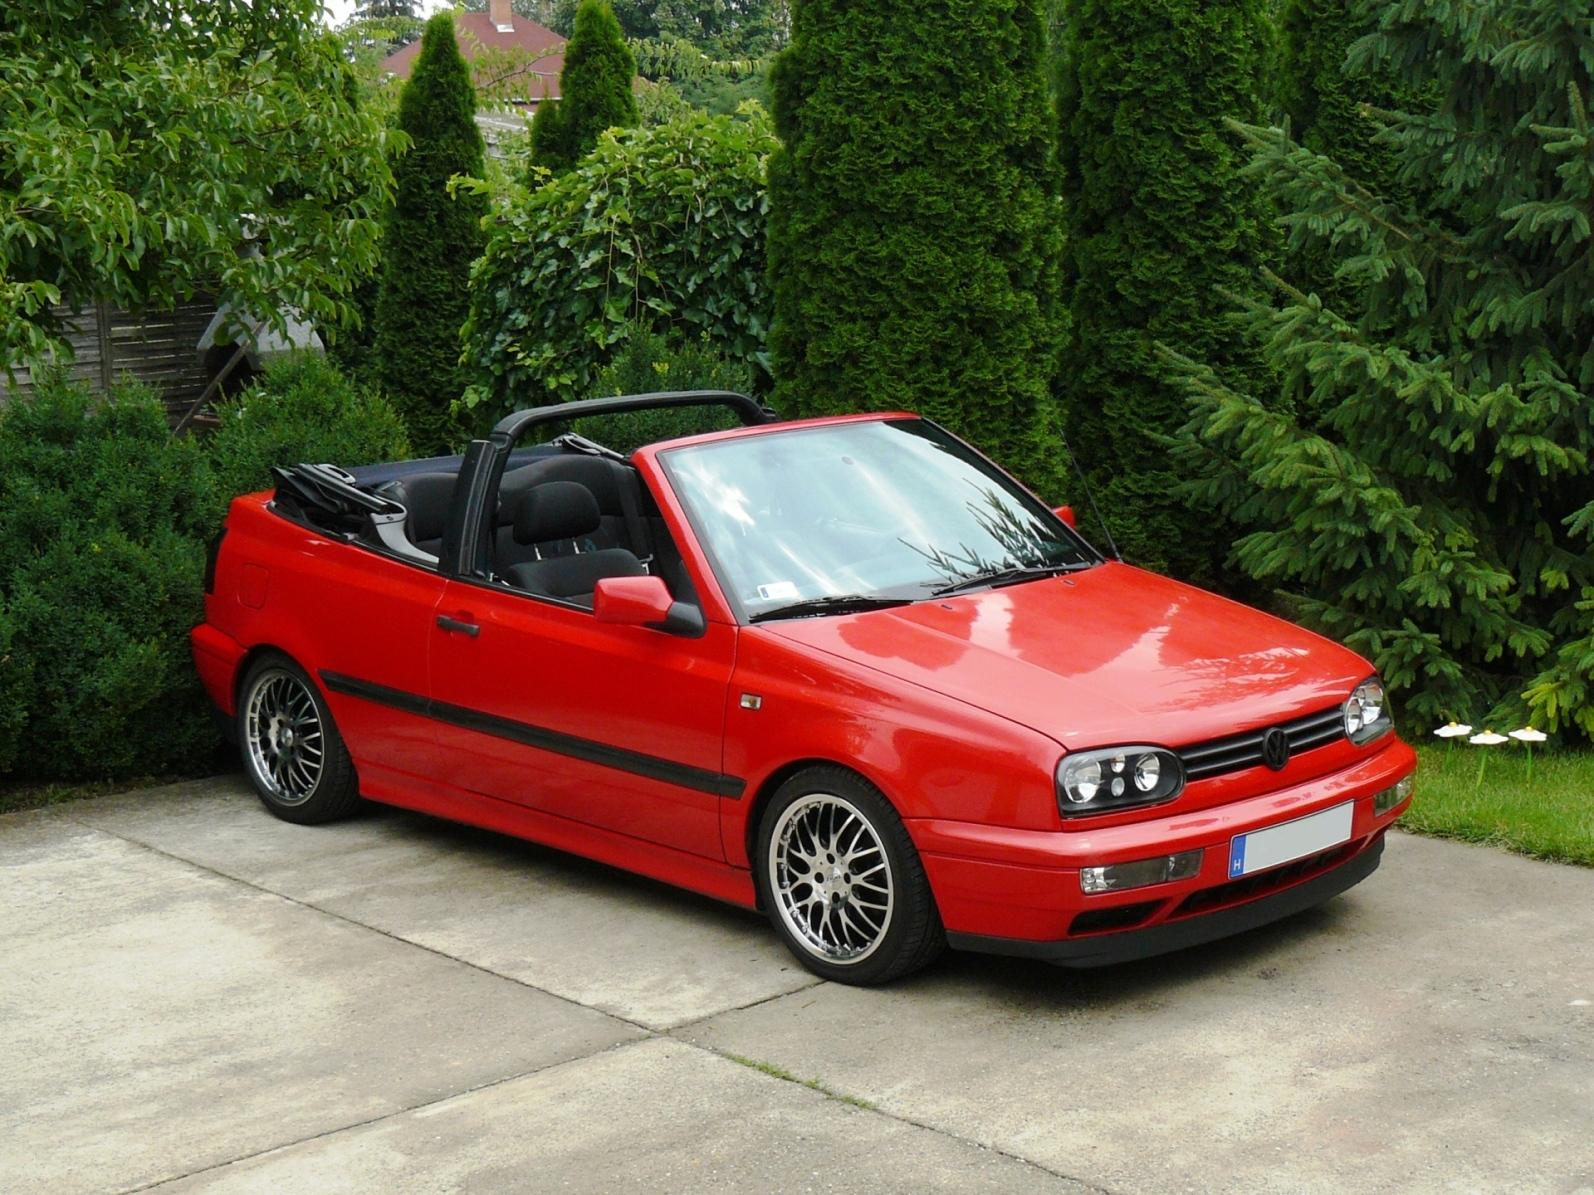 volkswagen golf 3 cabrio tuning mezaron carstyling hu. Black Bedroom Furniture Sets. Home Design Ideas